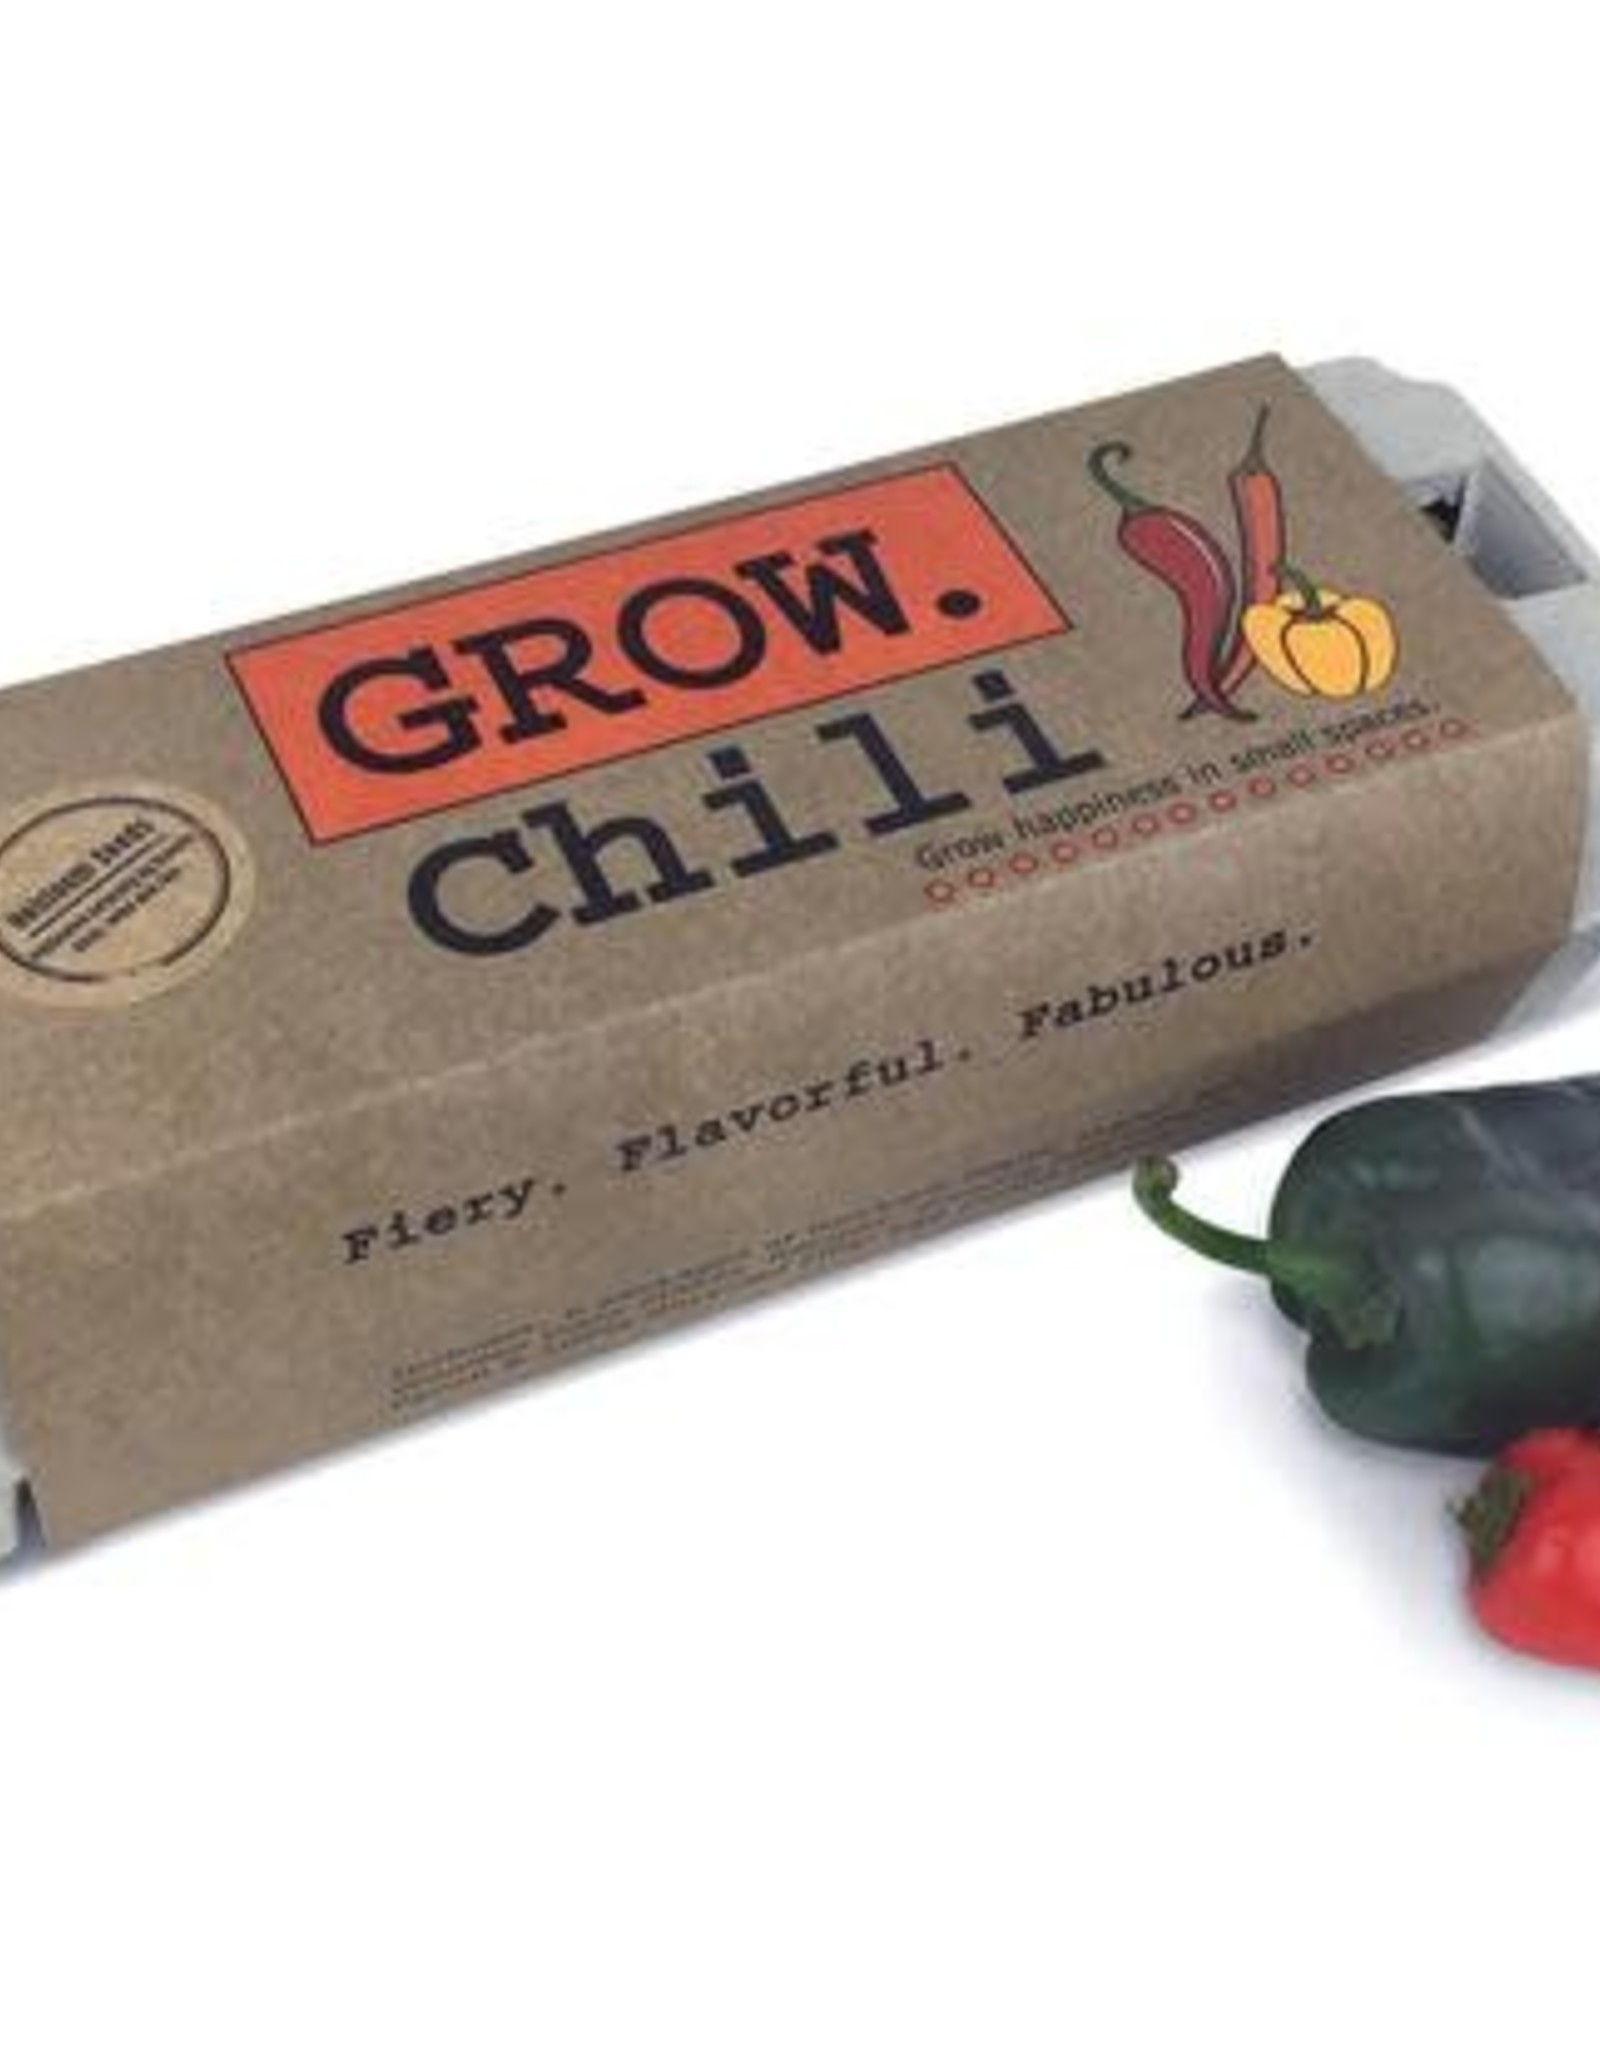 BSf-Co Grow Chili